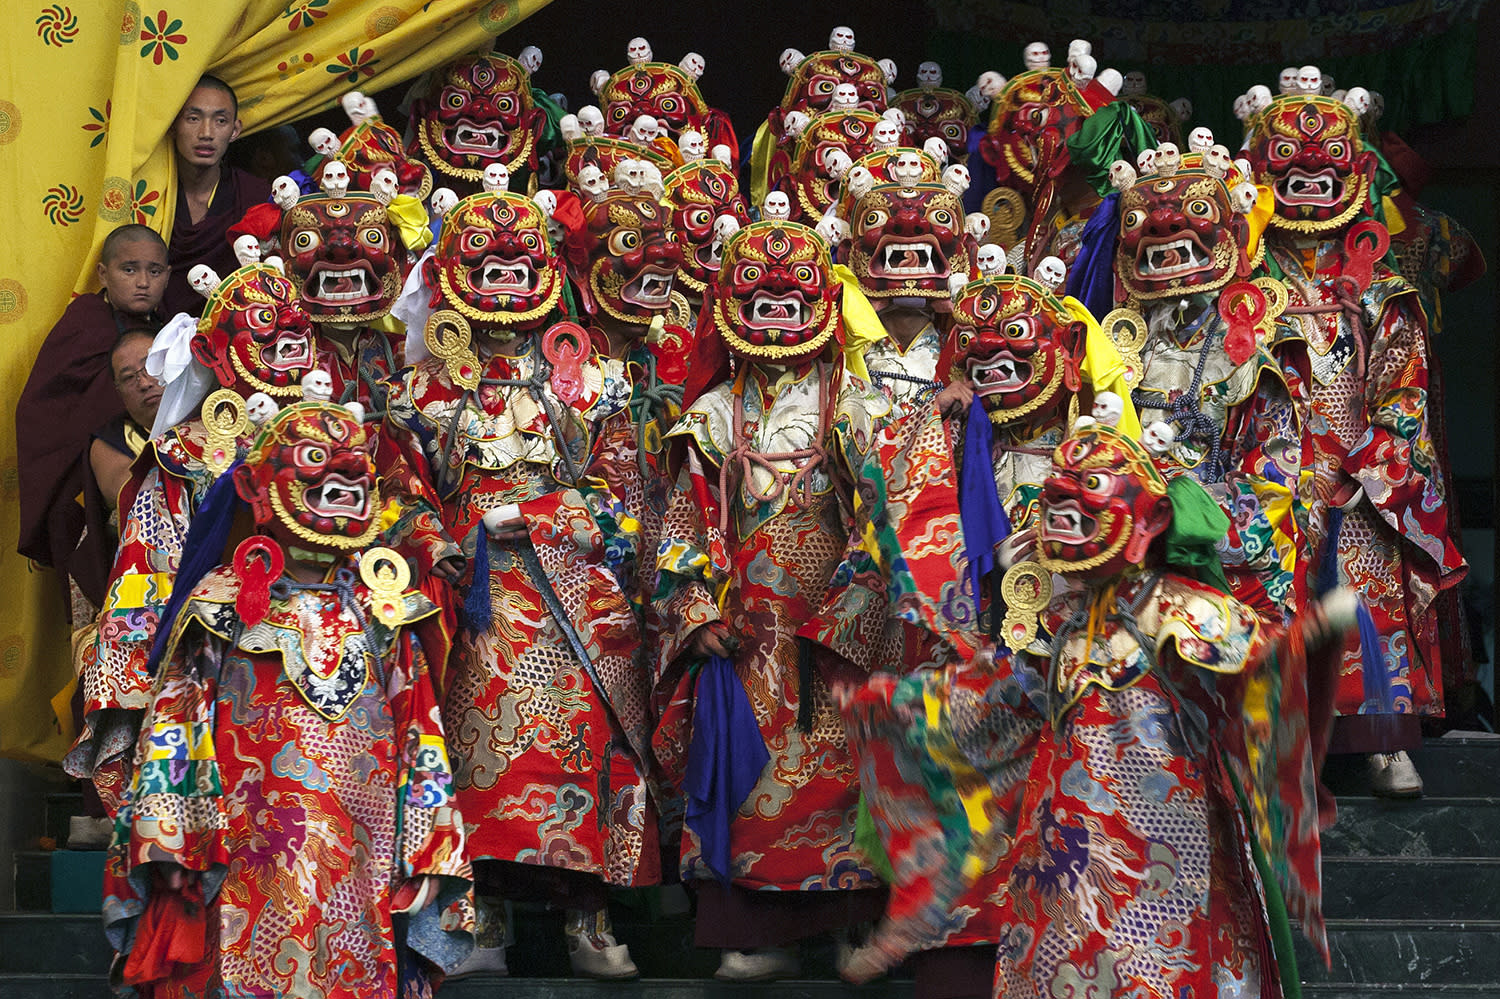 <p>Tibetan Buddhist monks perform a dance called 'cham' wearing traditional masks, at the Sherabling monastery, about 70 kilometers (40 miles) south of Dharmsala, India, Dec. 9, 2016. (Photo: Ashwini Bhatia/AP) </p>